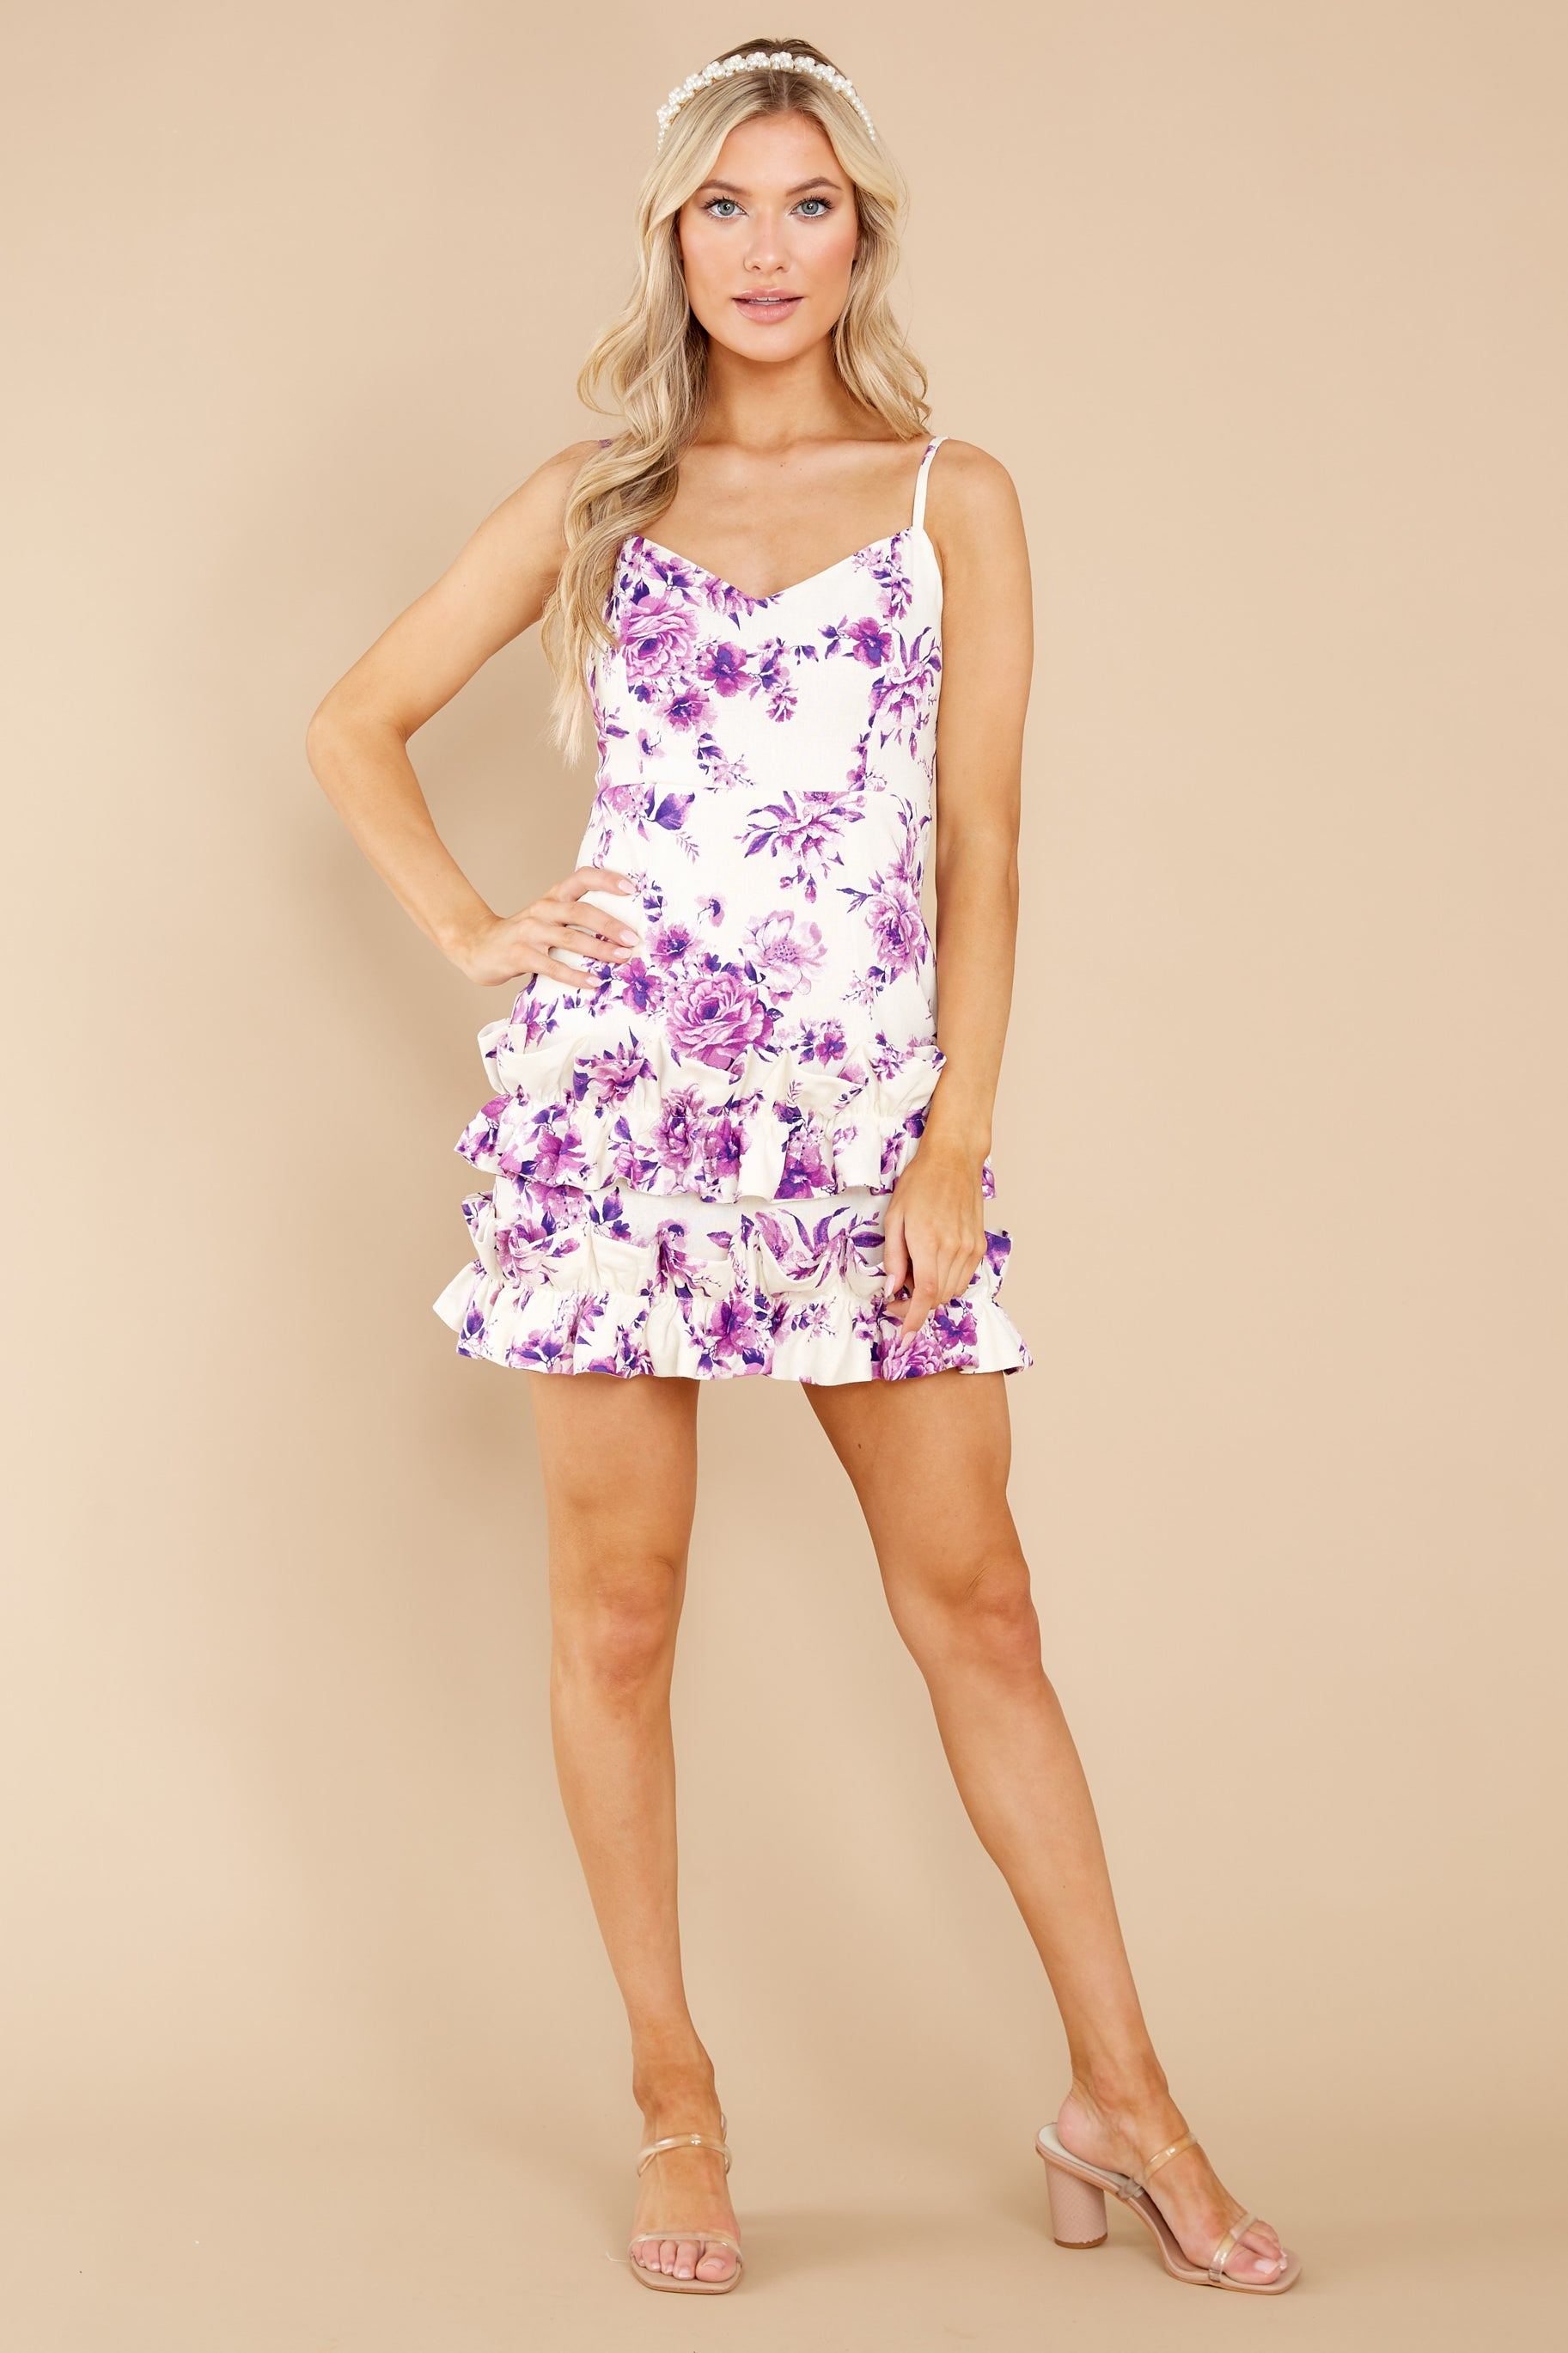 3 In Blossom White And Purple Floral Print Dress at reddress.com